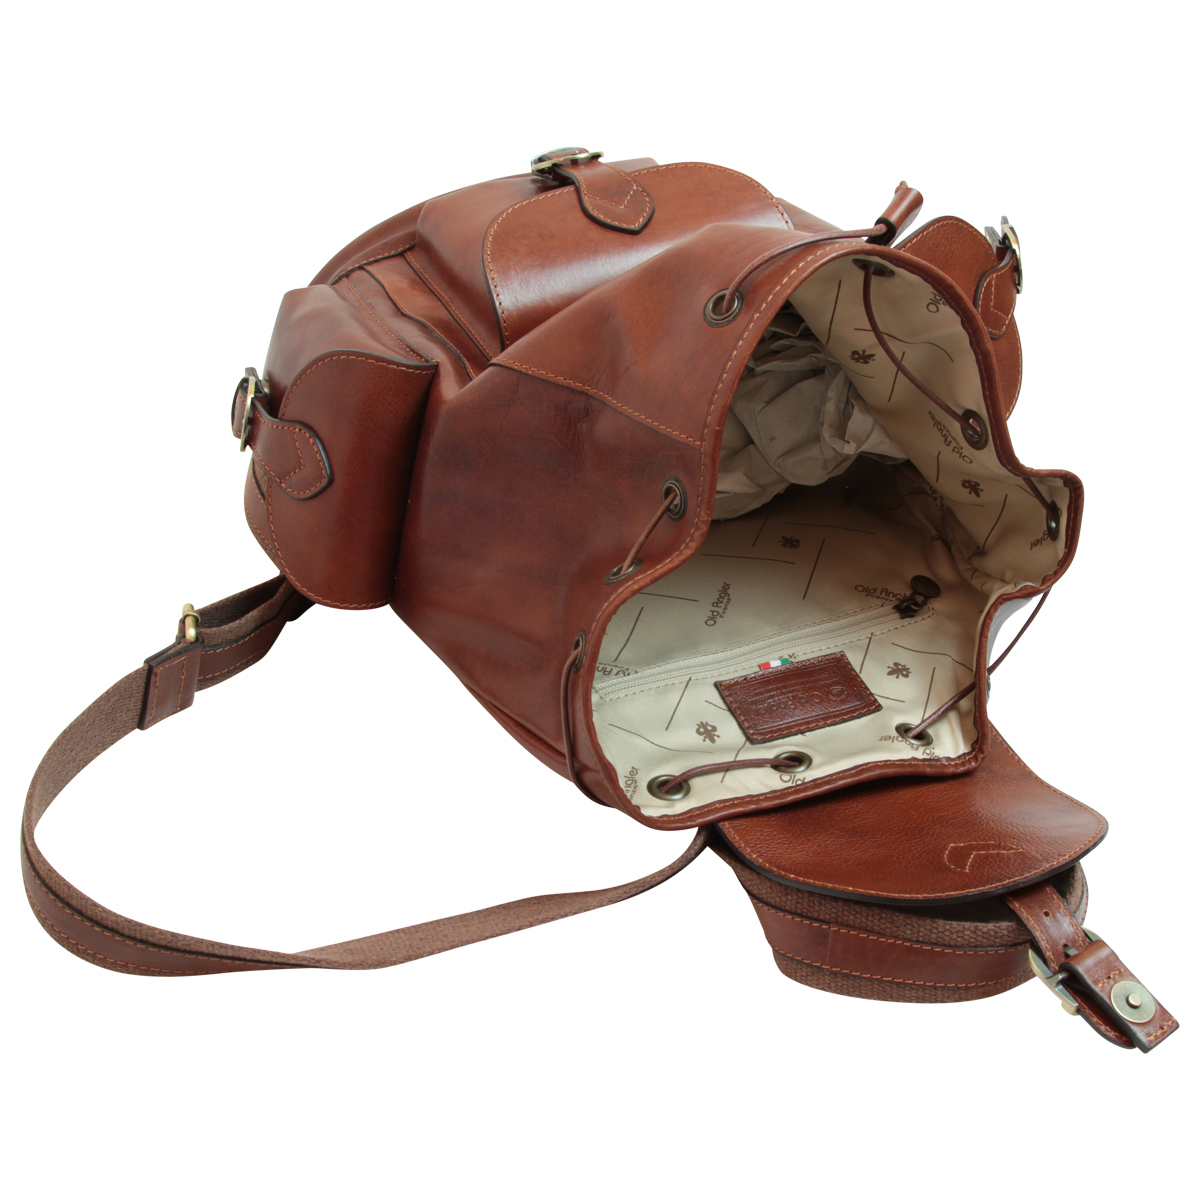 Leather backpack with 3 exterior pockets - Brown | 109105MA UK | Old Angler Firenze